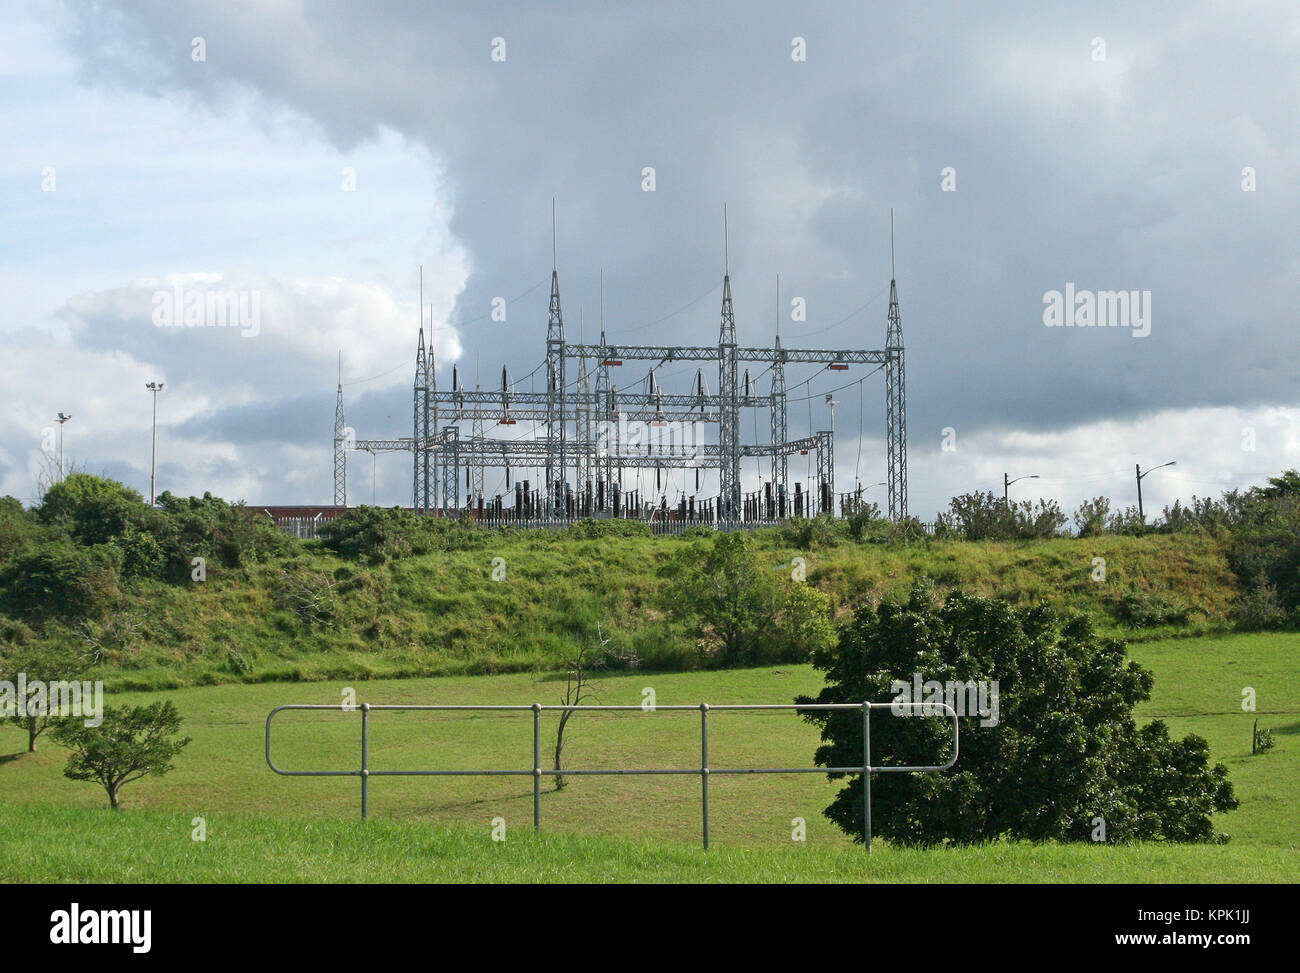 Power grid station, East London, Eastern Cape, South Africa. - Stock Image